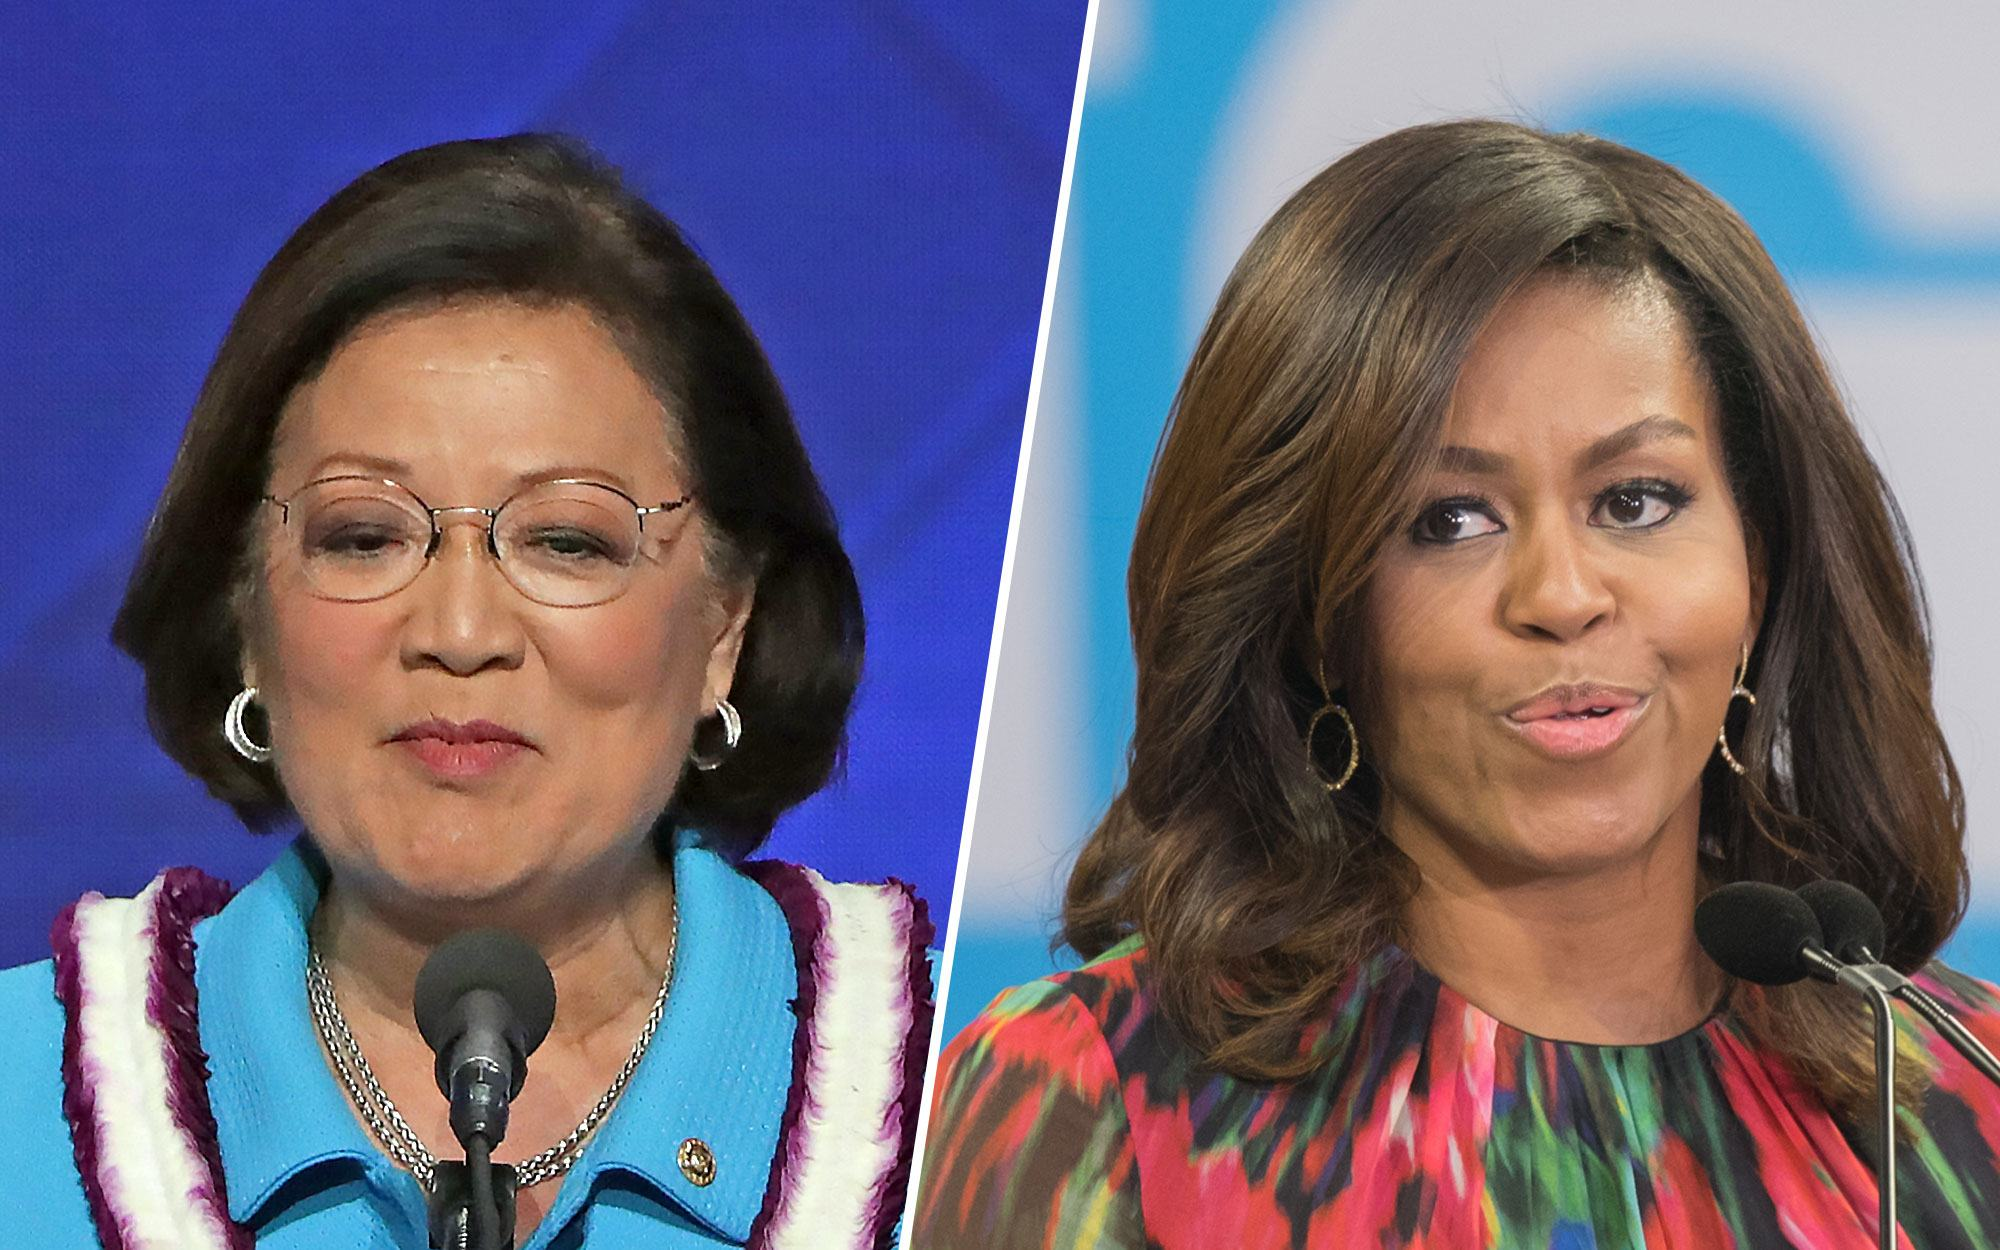 Hirono, Obama and Other Liberals Are 'Really Elitist Snobs at Heart'